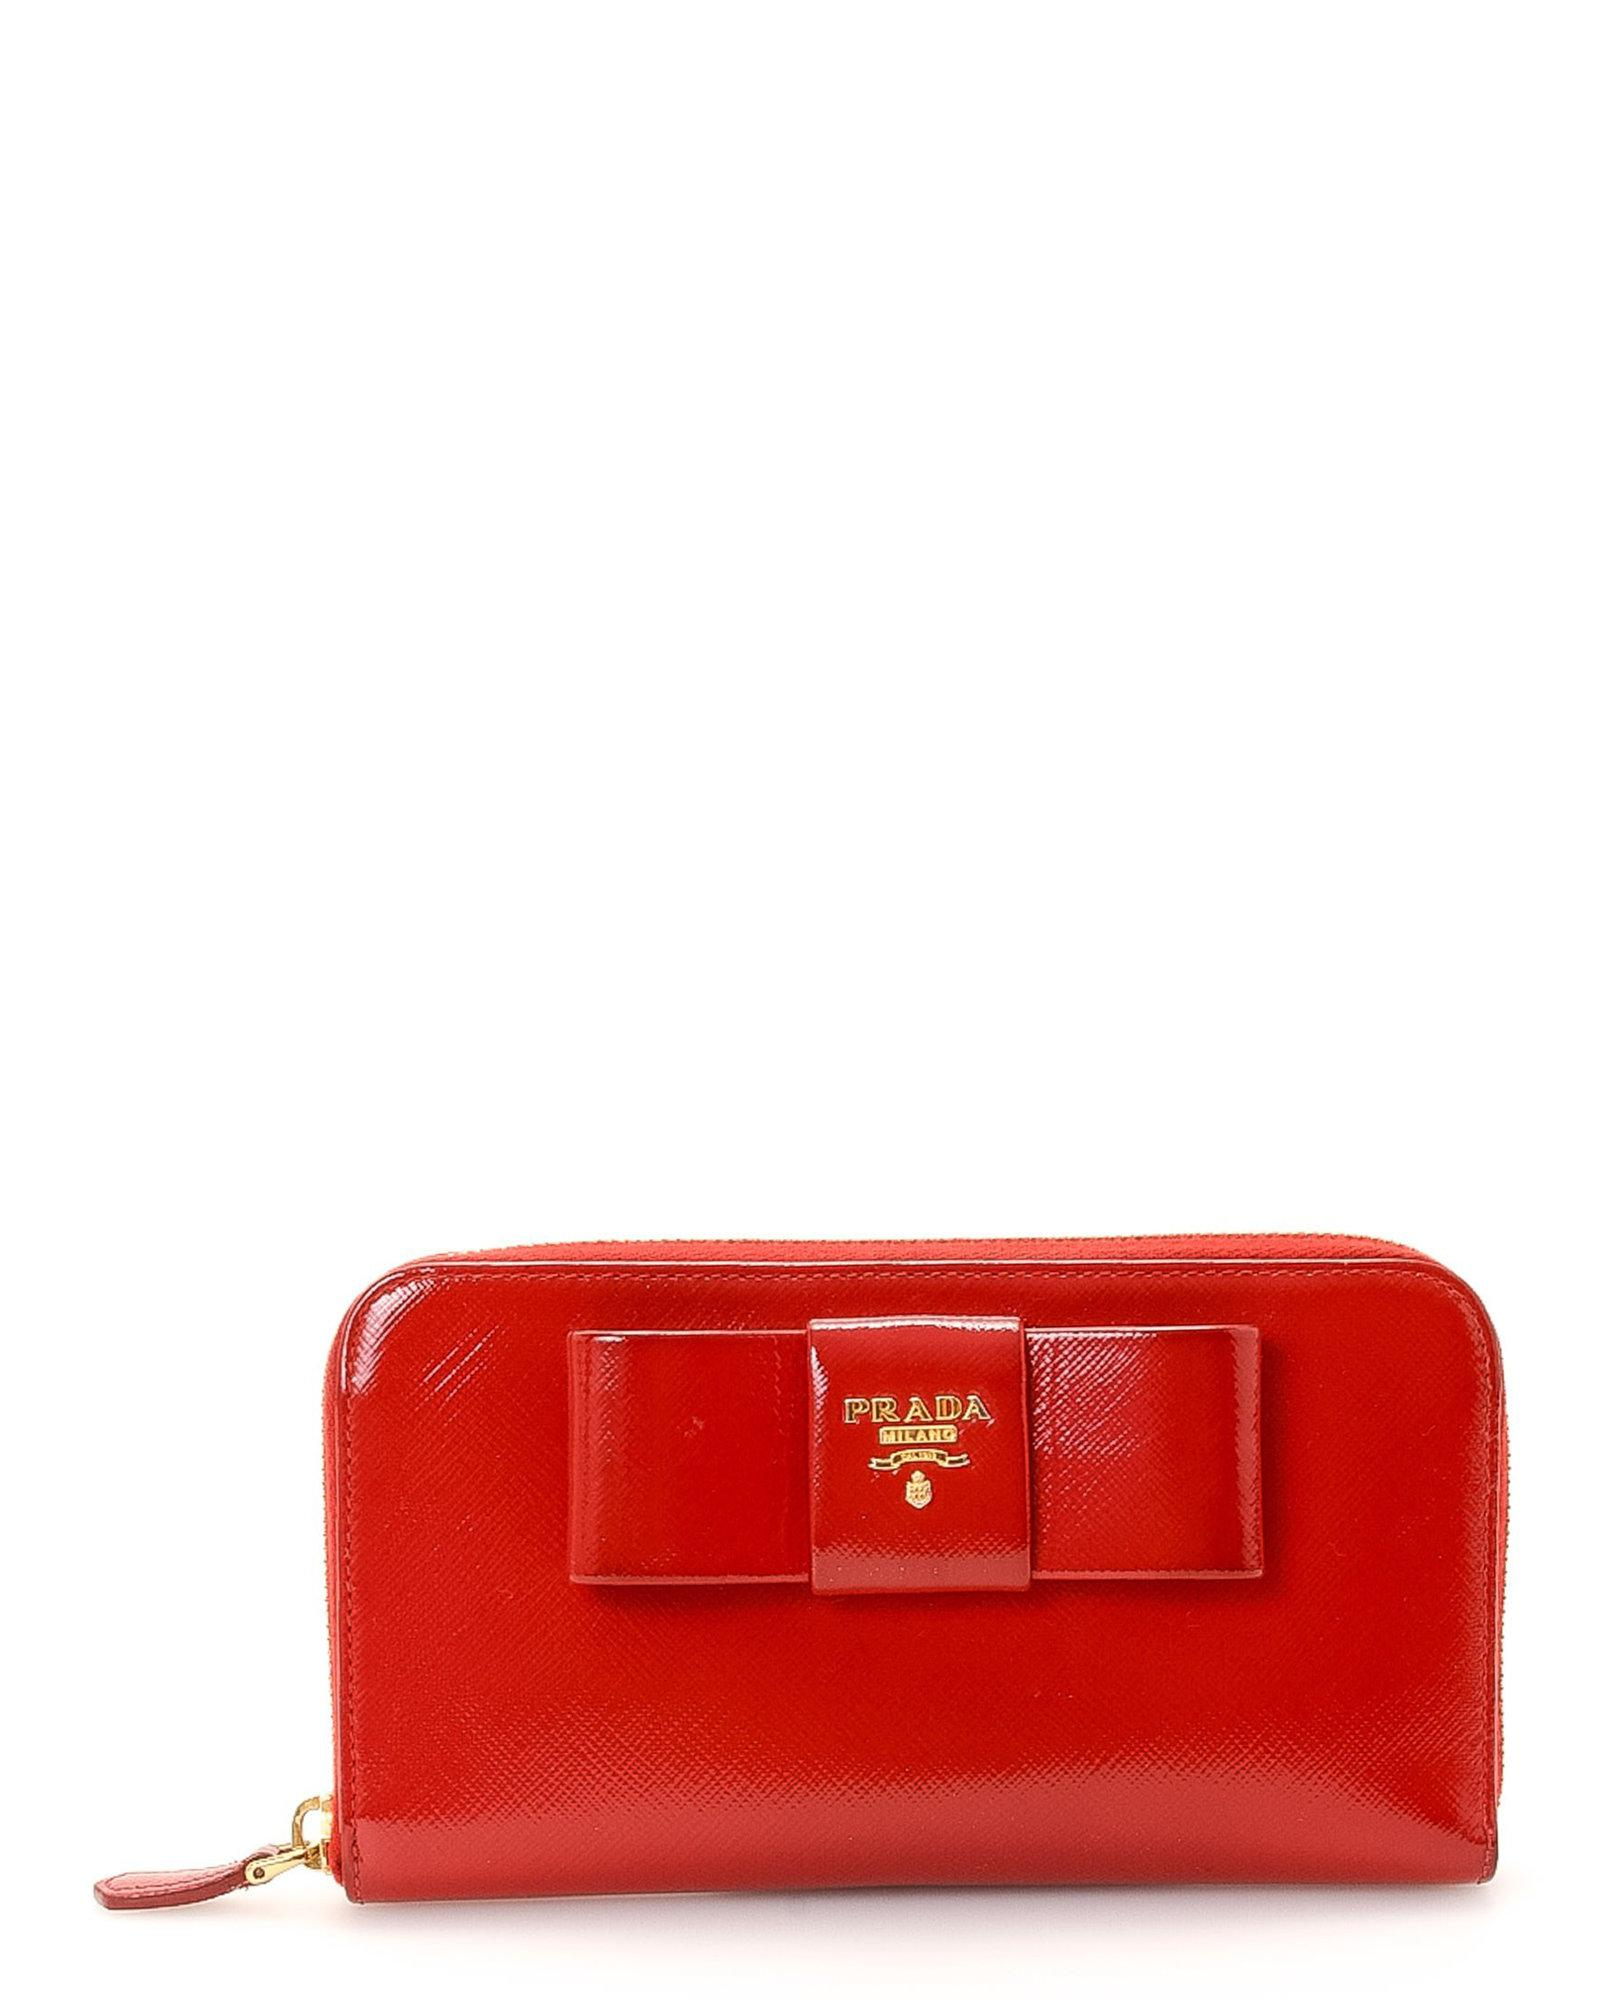 a52f11d661e10b Lyst - Prada Bow Saffiano Lux Zip Wallet - Vintage in Red